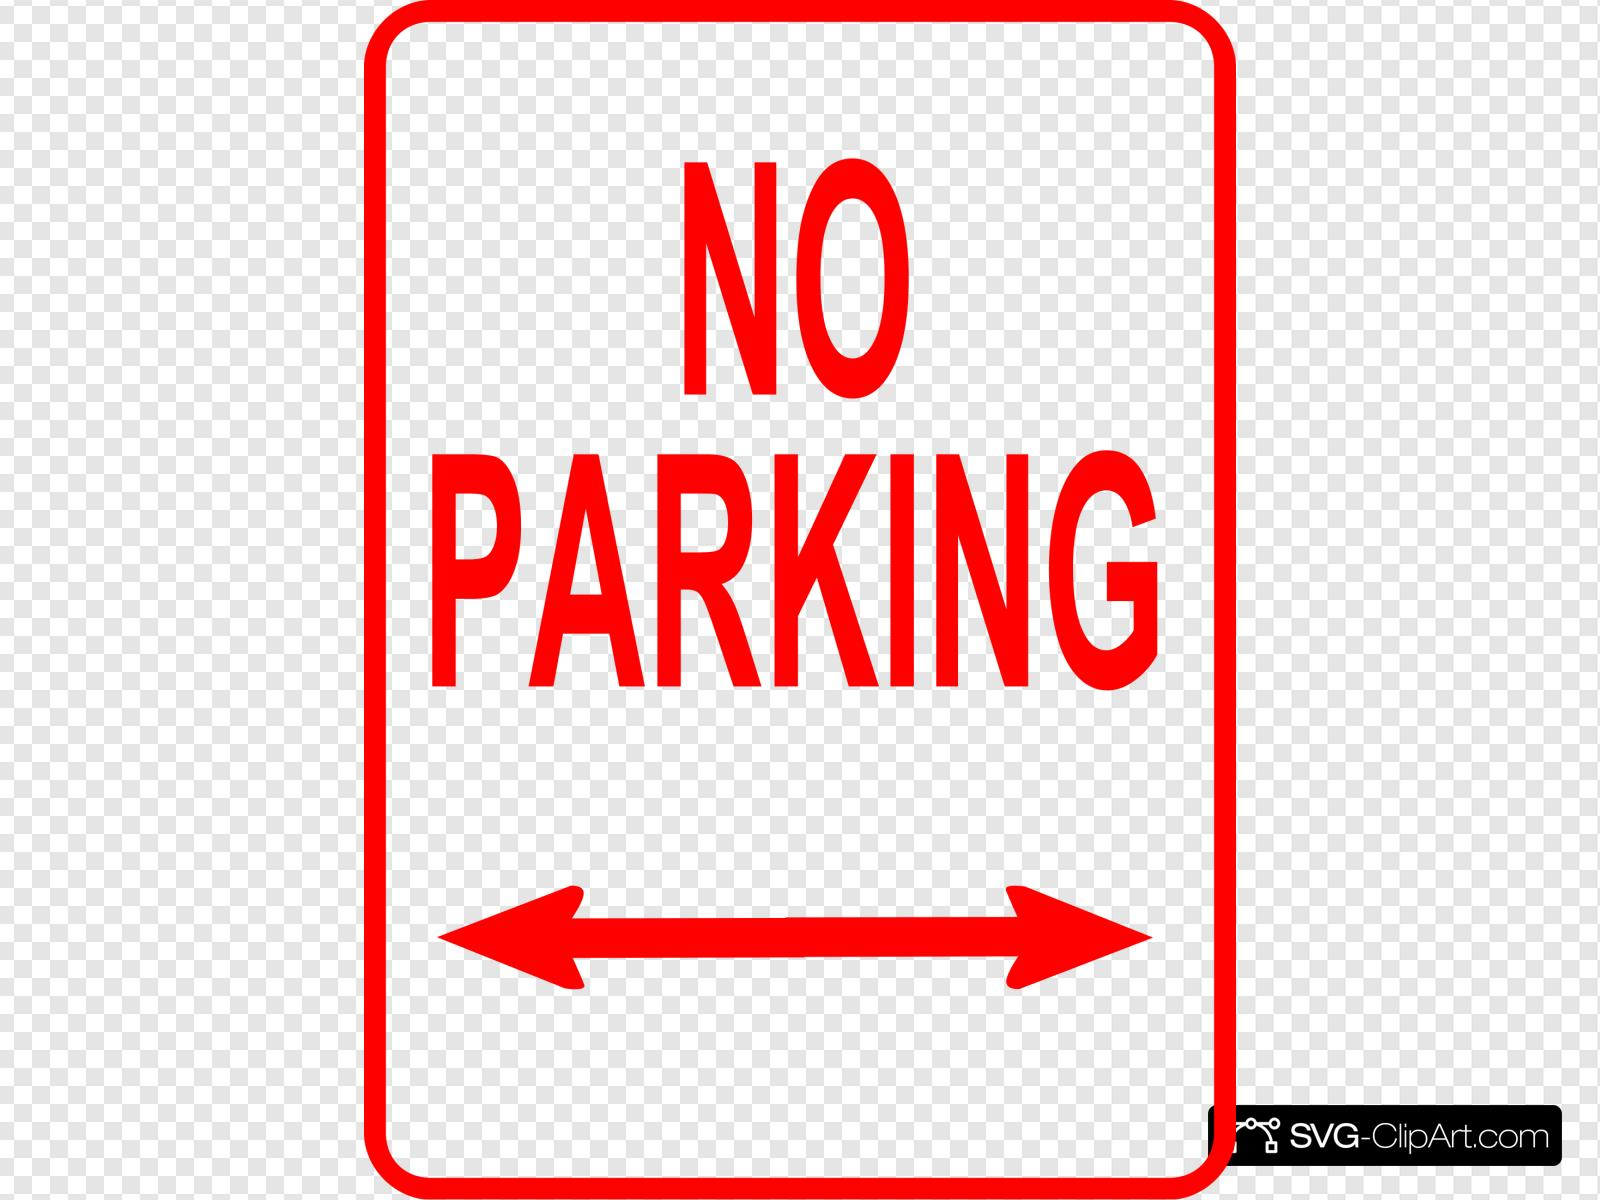 No Parking Sign Clip art, Icon and SVG.